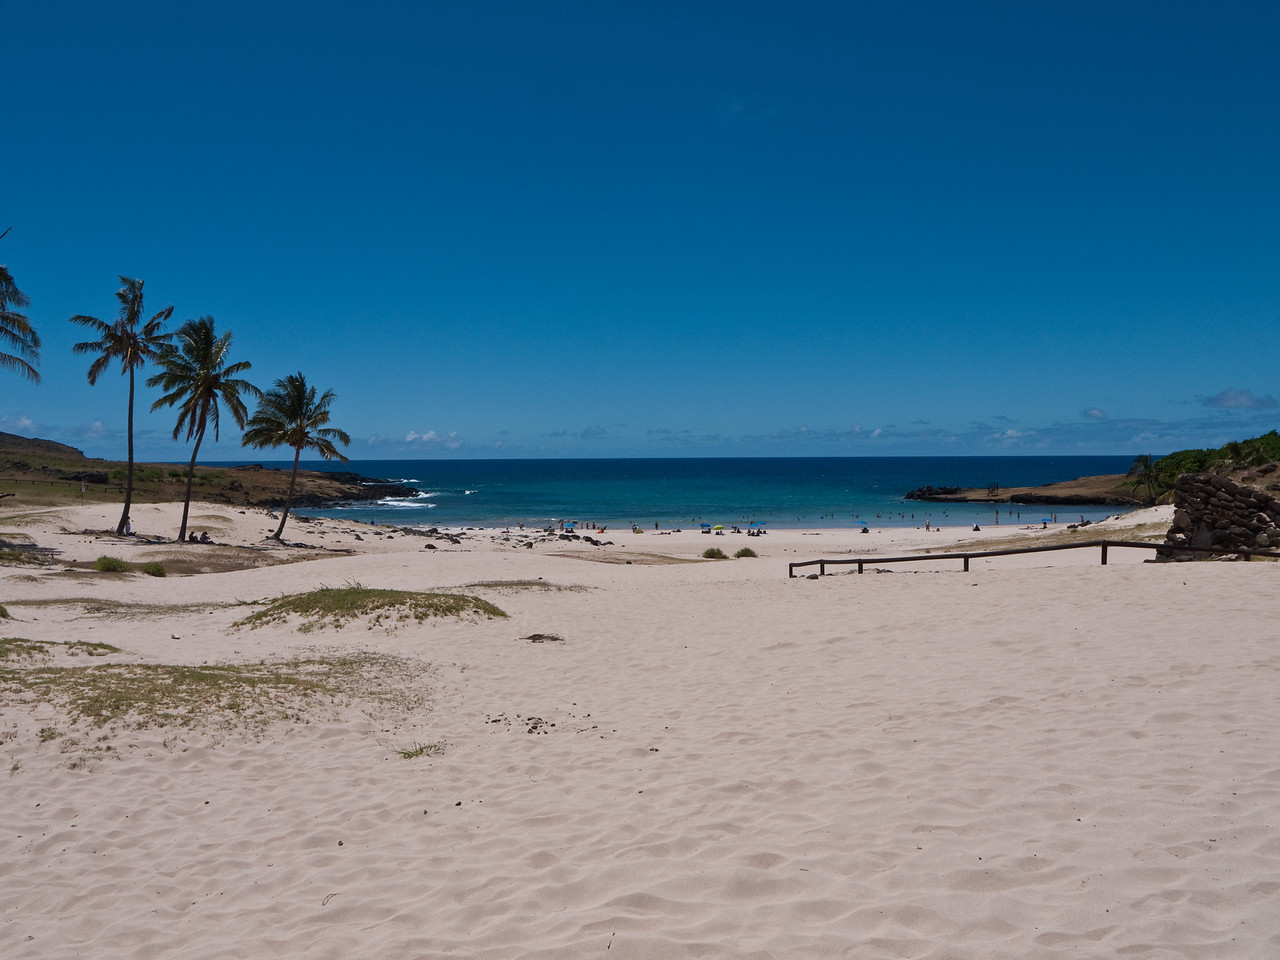 One of Easter Island's two sand beaches